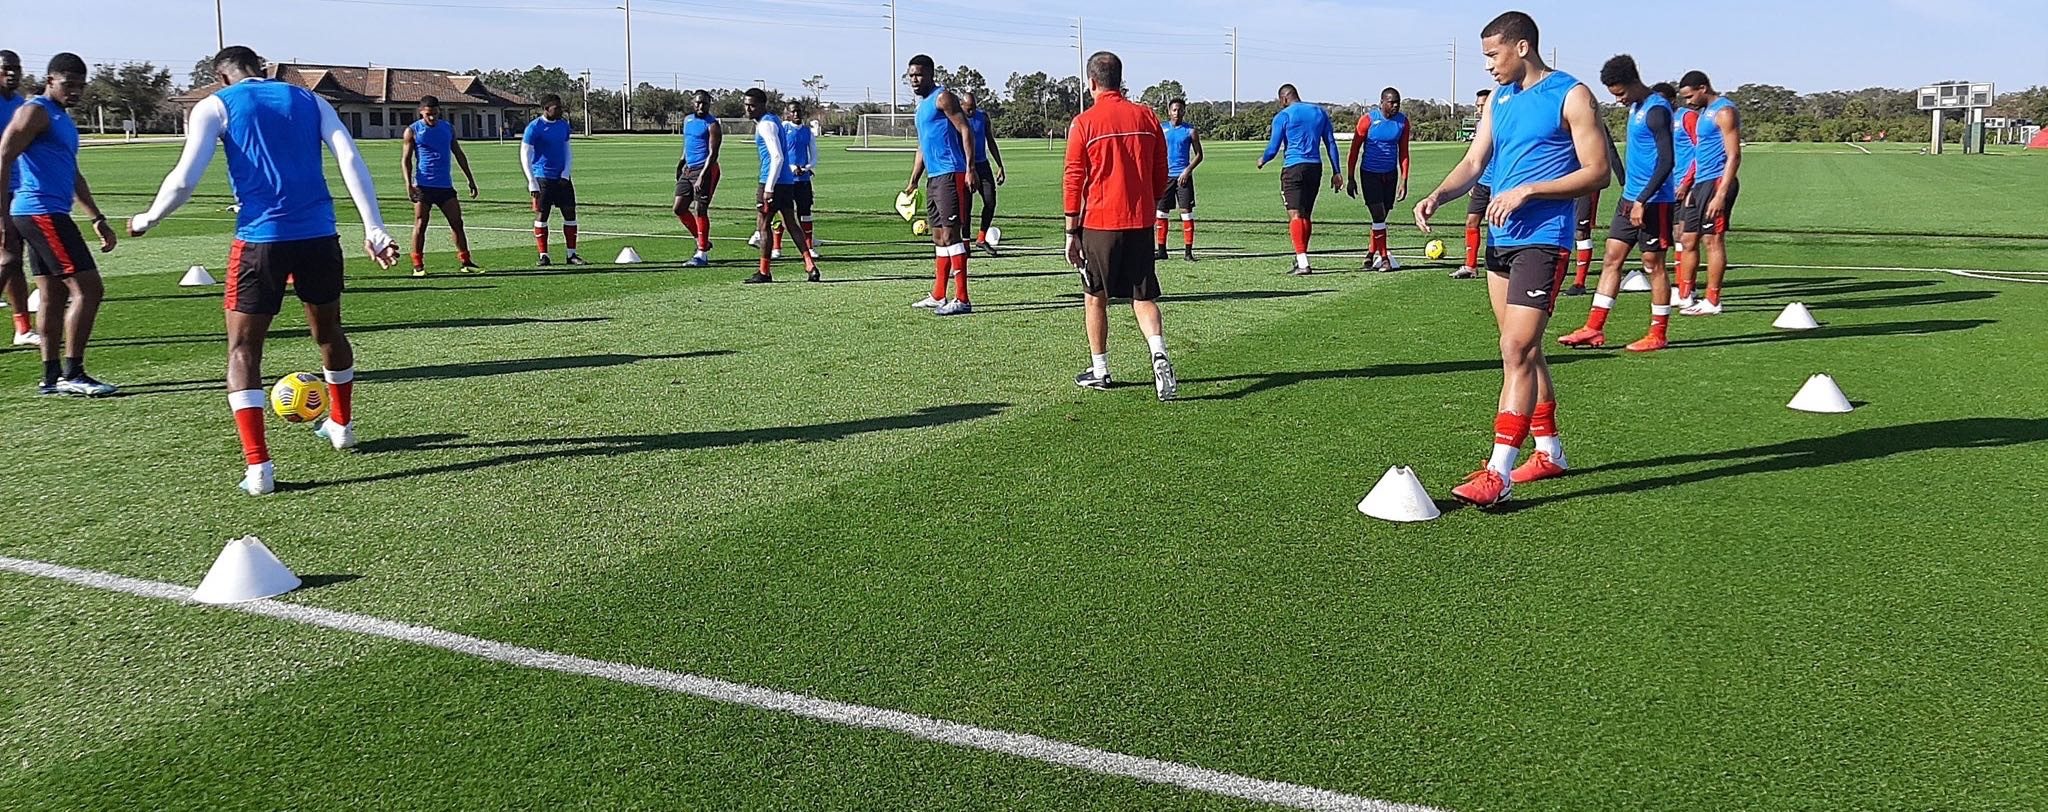 Photo: T&T training in Florida earlier this year.